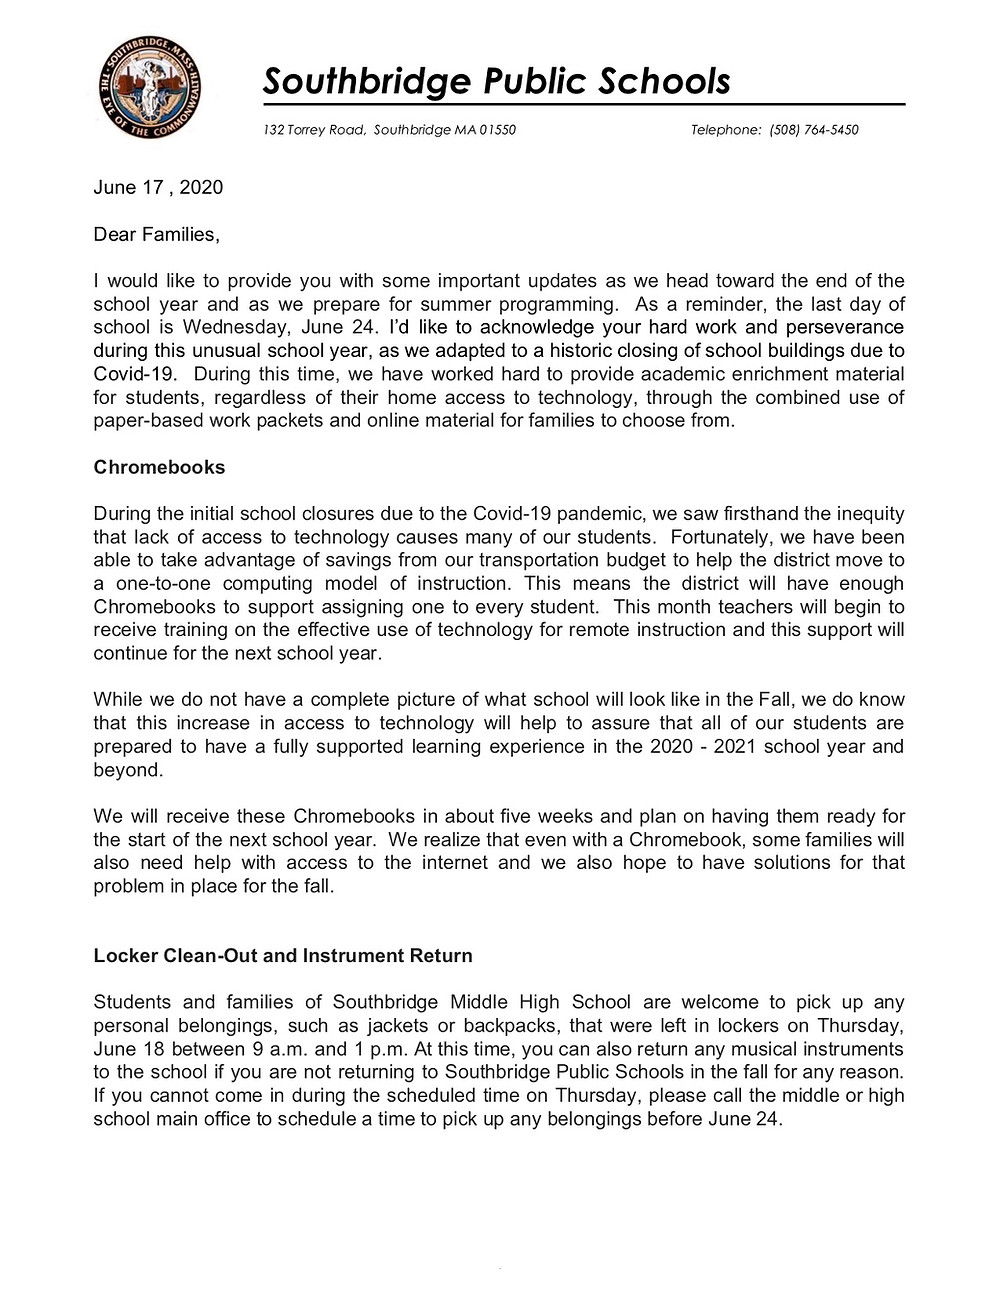 Image of the letter which is also in the body of this email. English version. Click for a PDF of the letter